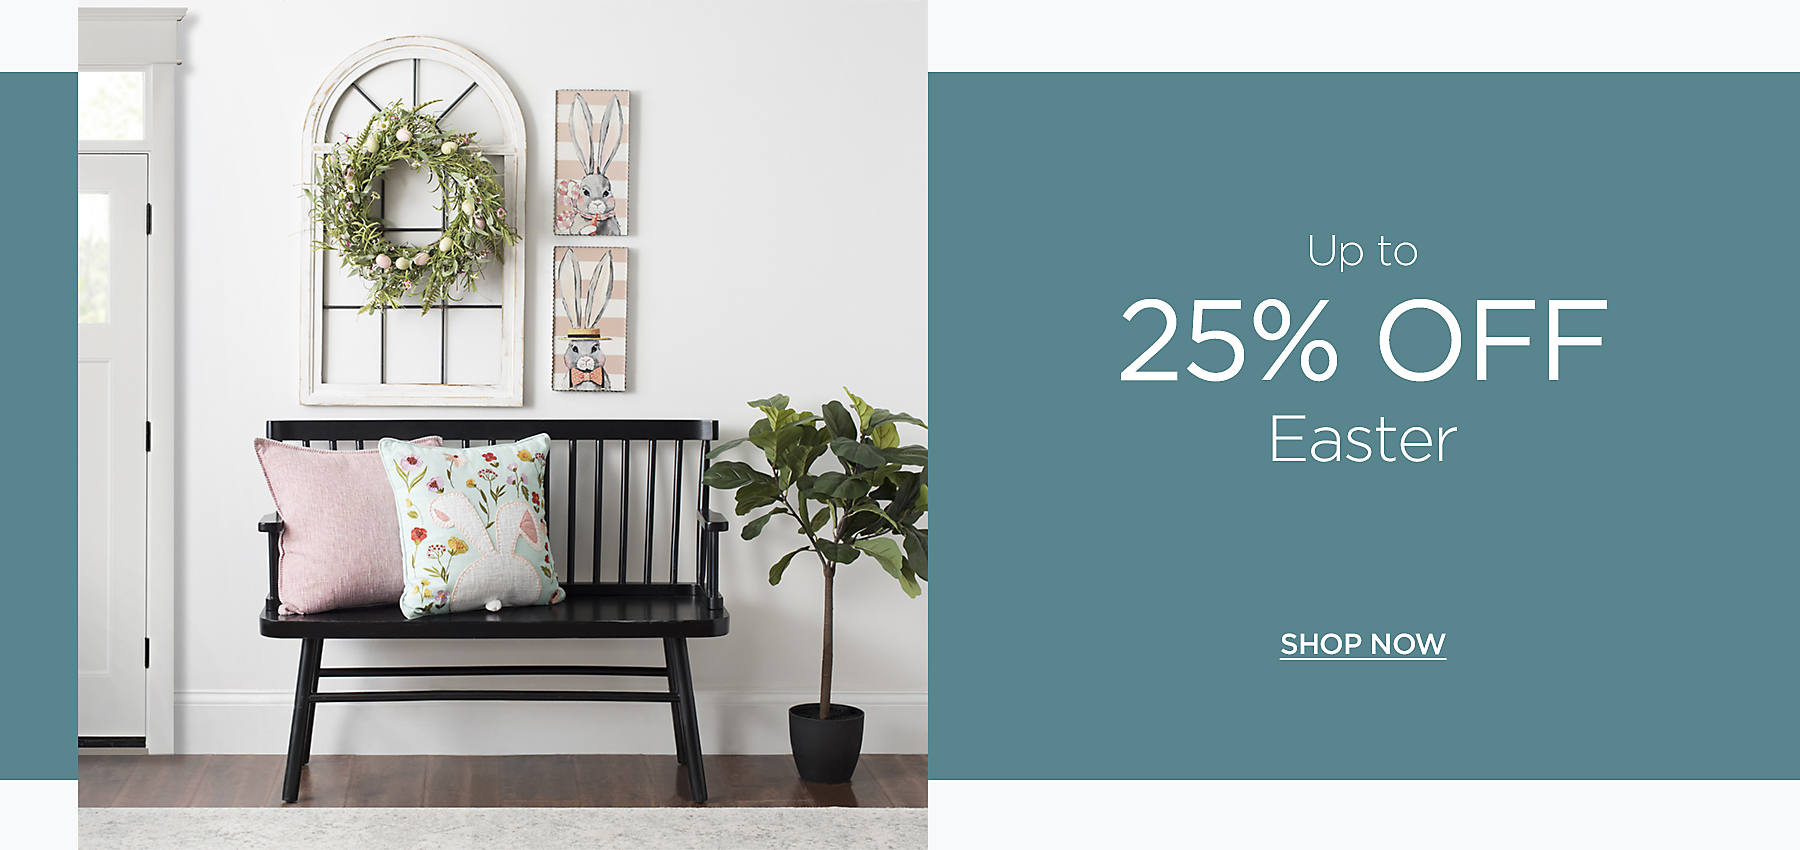 up to 25% off Easter Decor - Shop Now